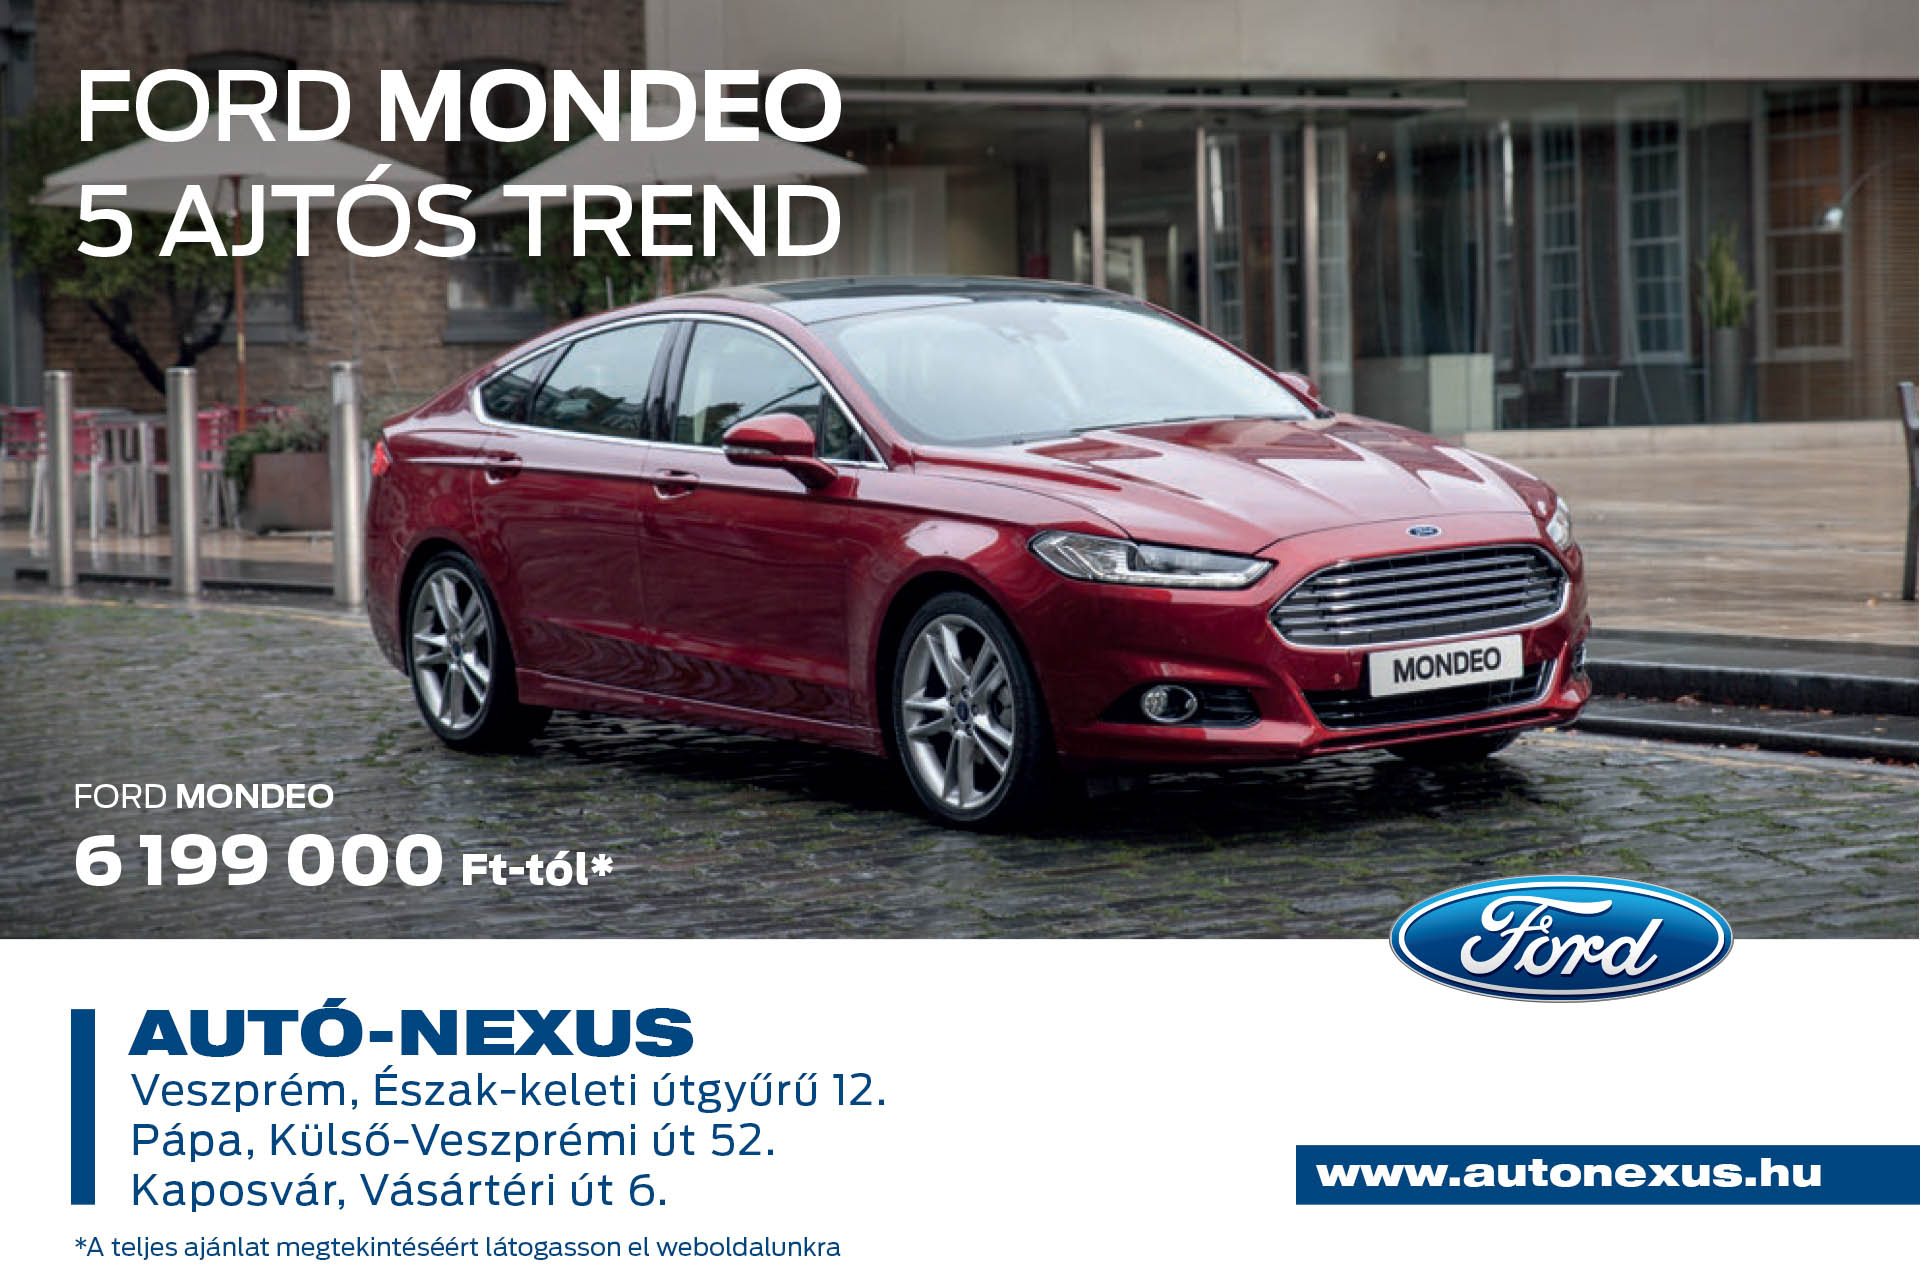 FORD mondeo 1920x1280